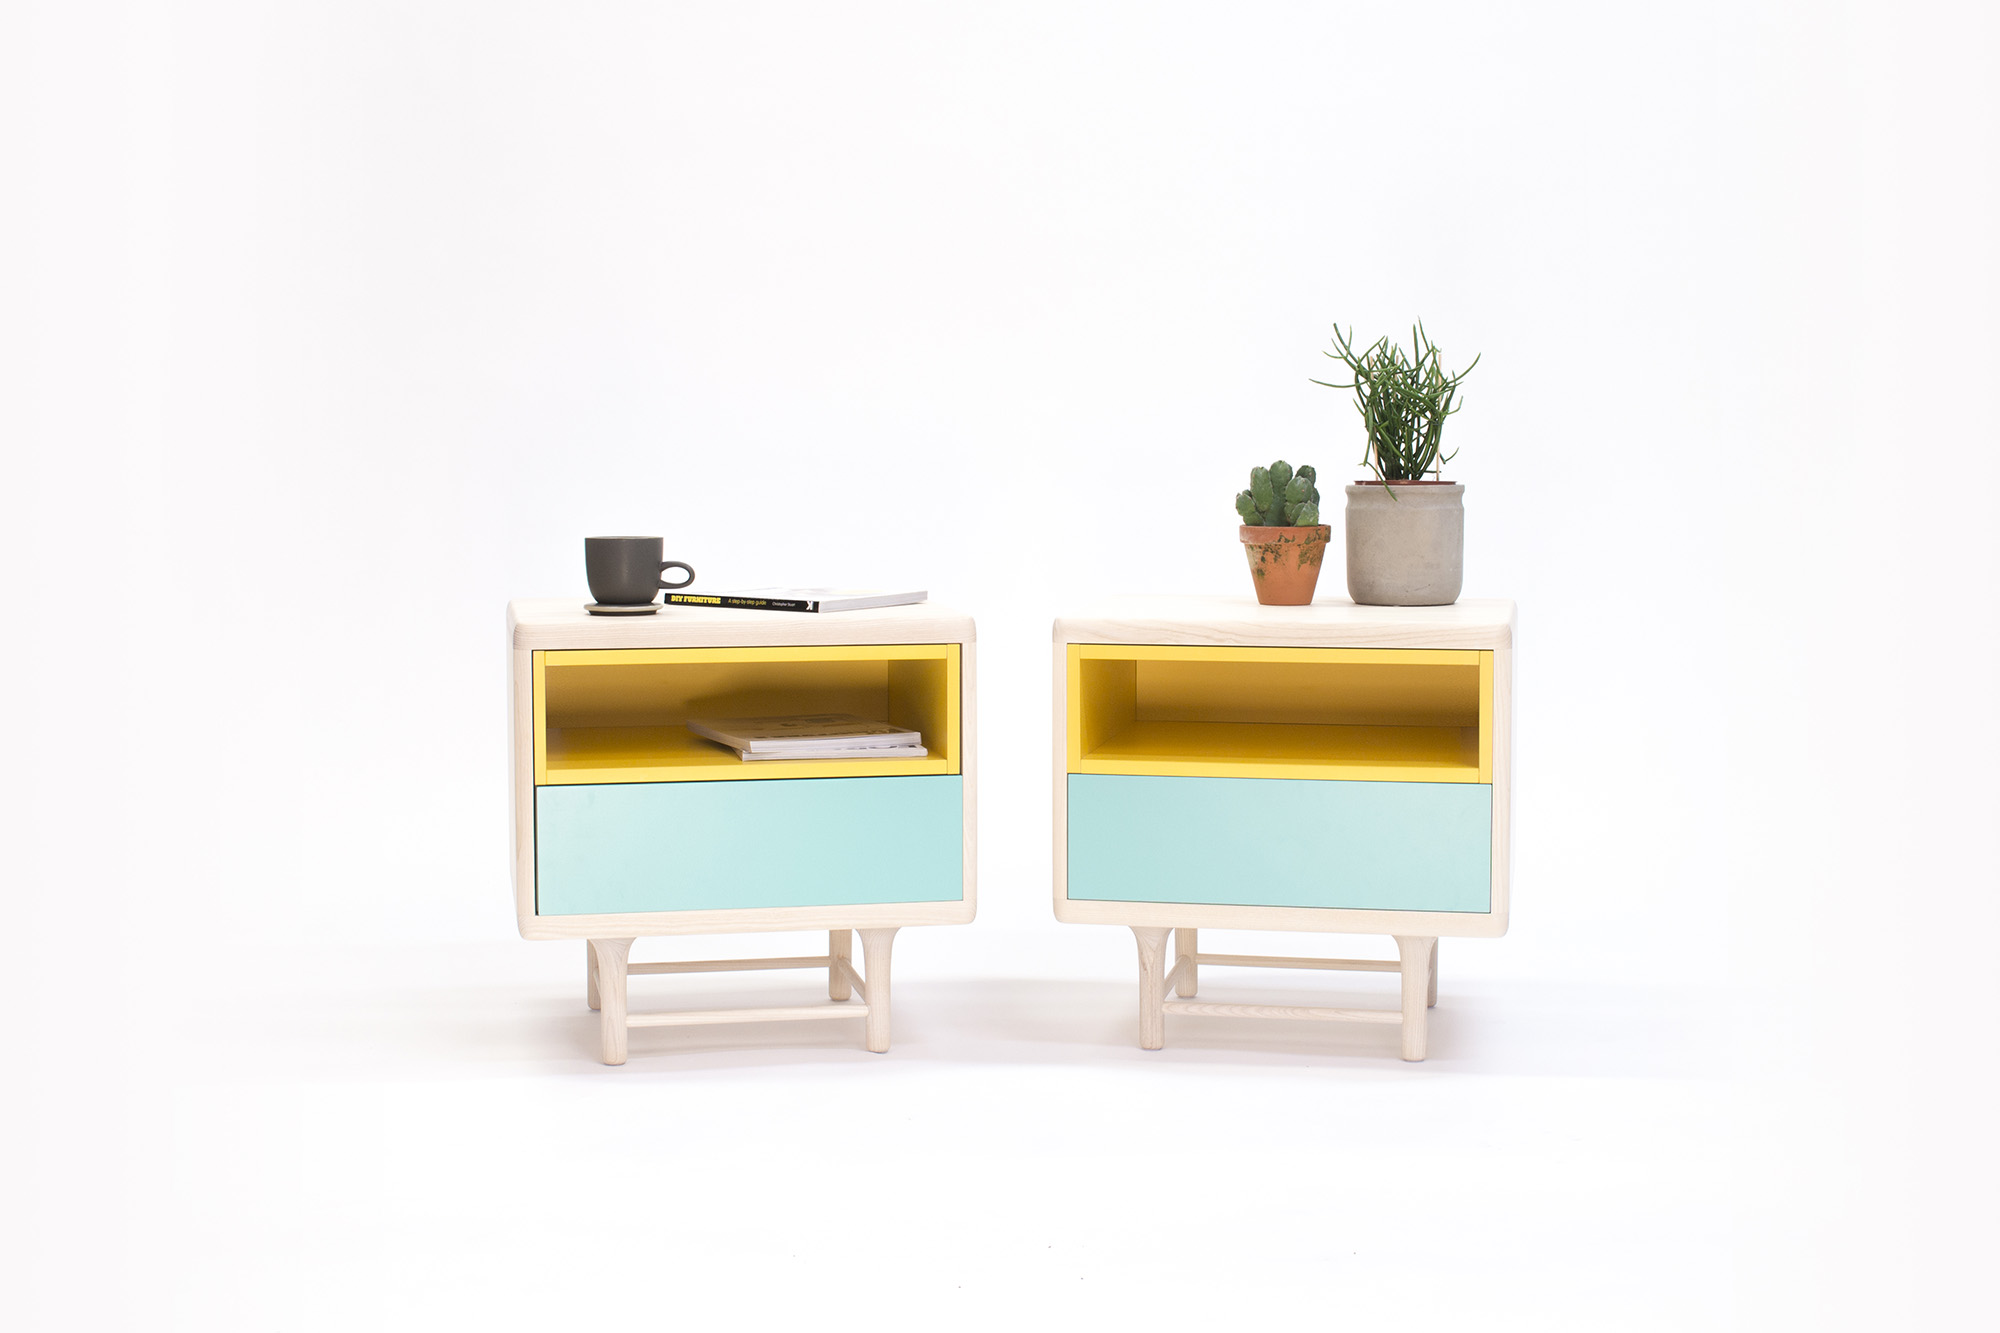 Minimal scandinavian furniture by designer carlos jim nez your no 1 source of architecture and - New furniture design ...